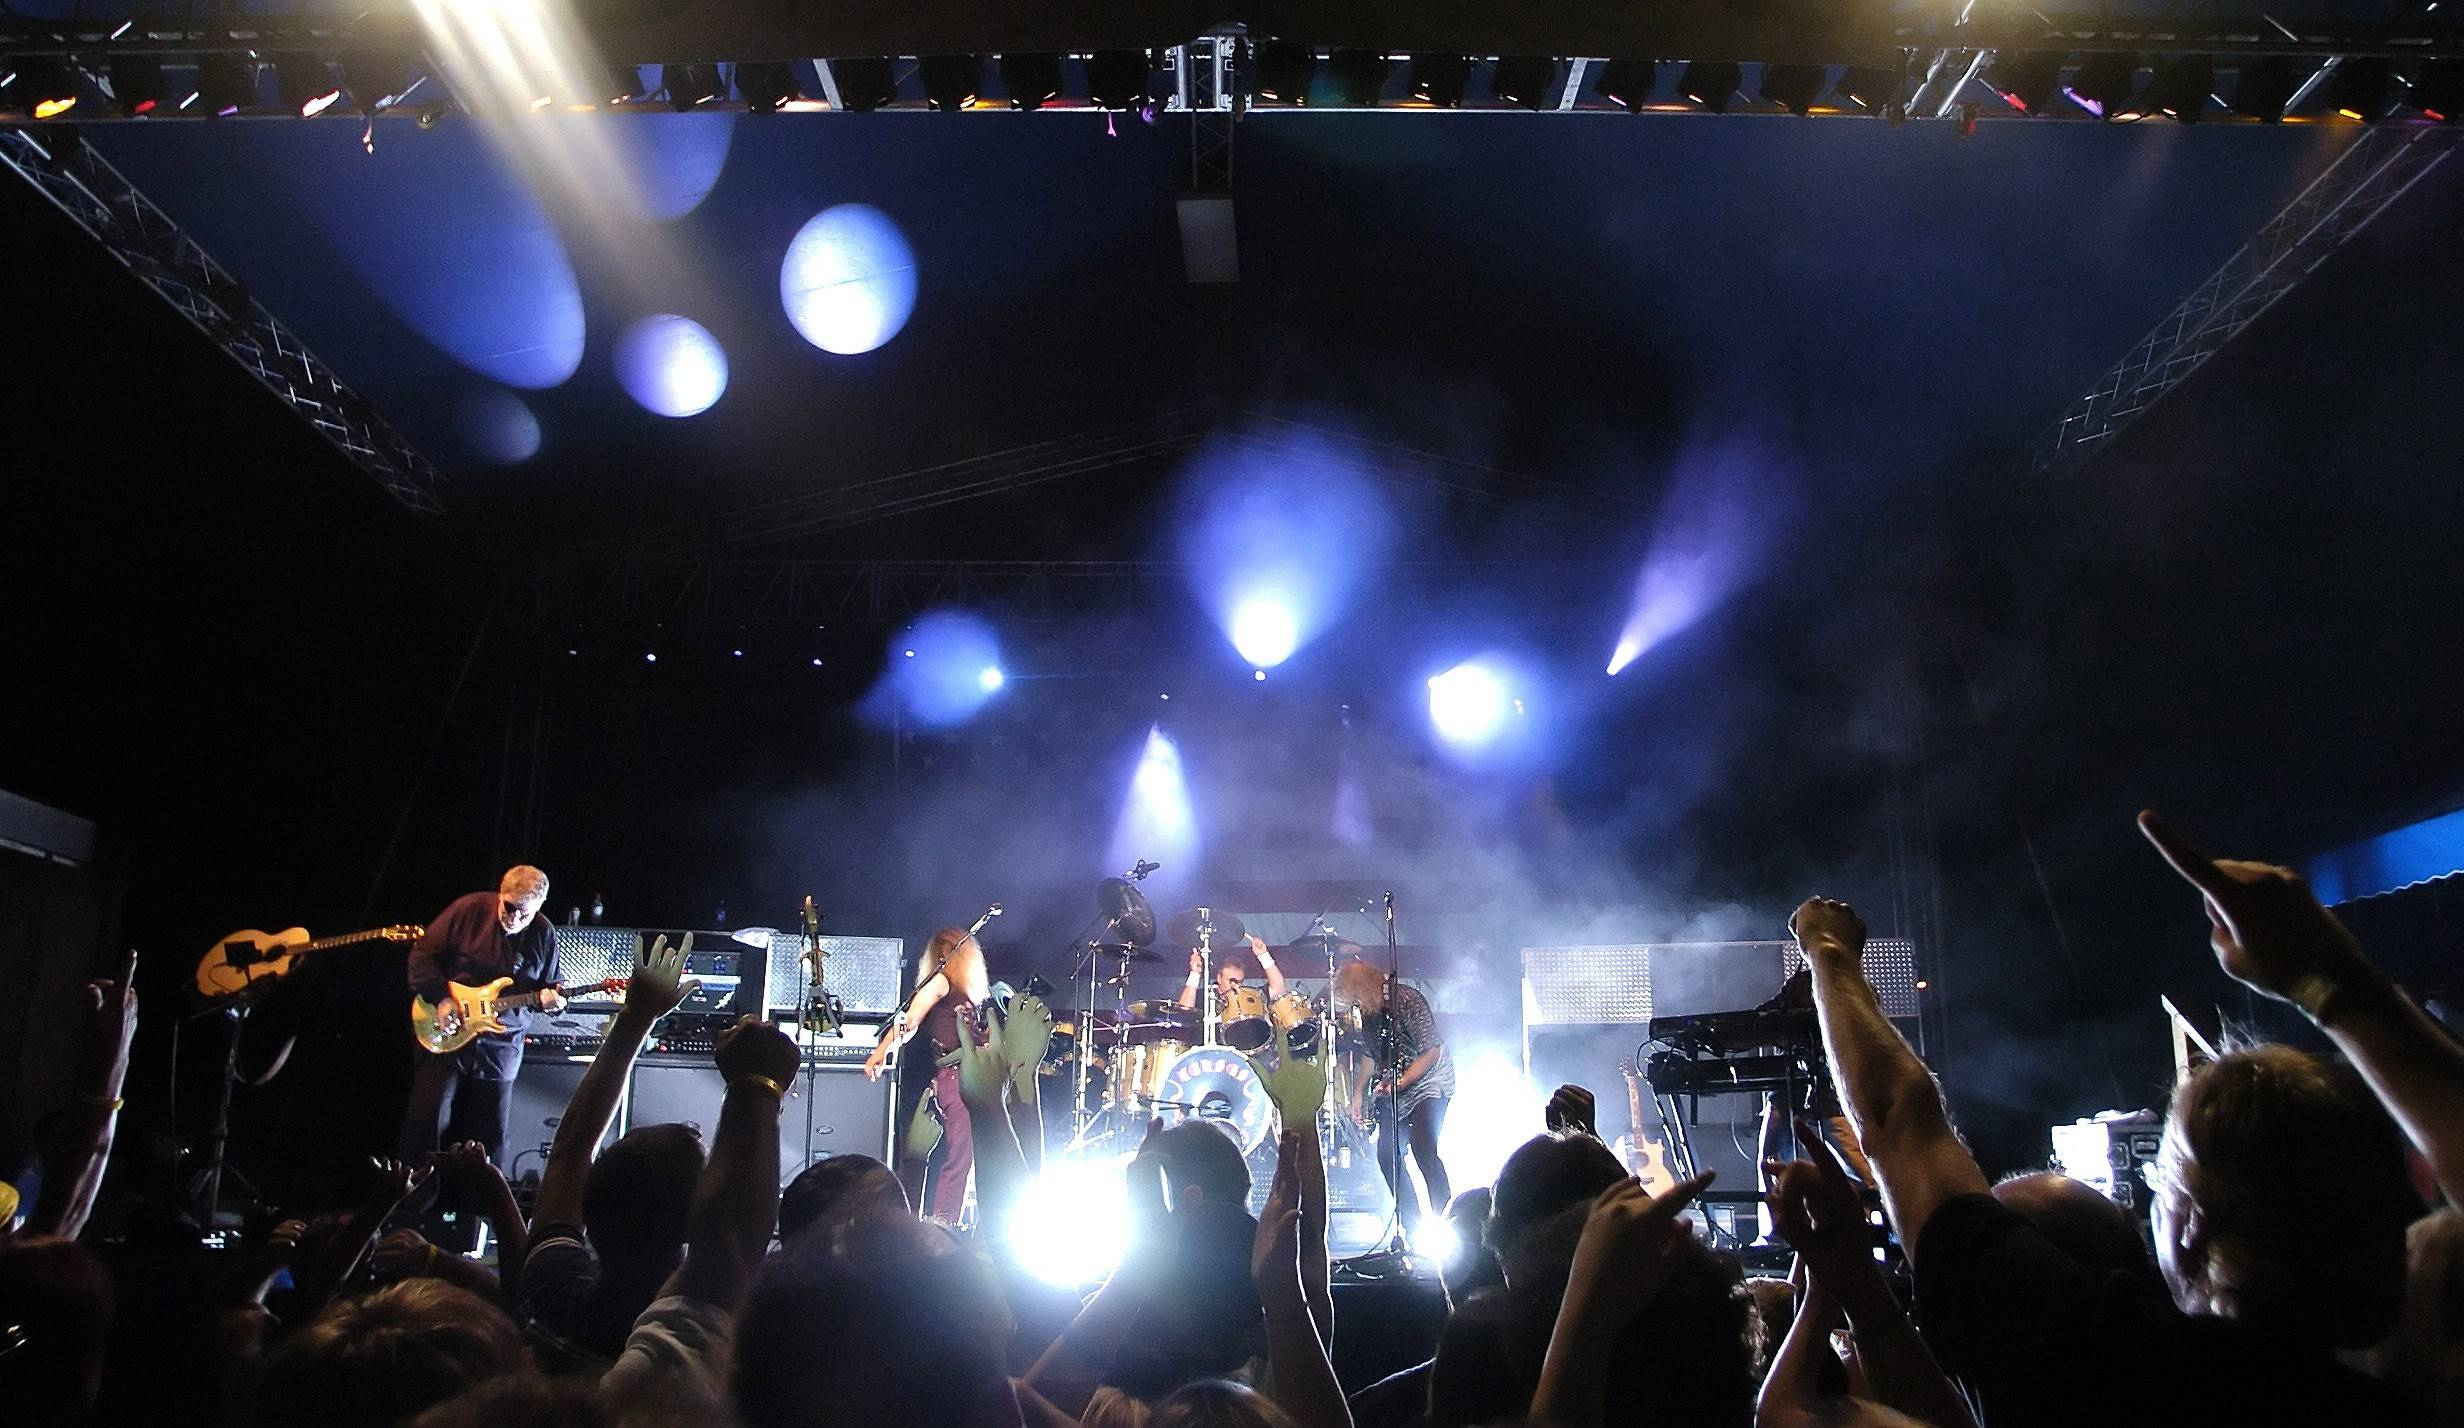 Suburban music fans will be treated once again over the Fourth of July holiday to familiar acts playing the main stages at local festivals. Event organizers say growth in the number and size of suburban fests has left them competing for performers and audiences.